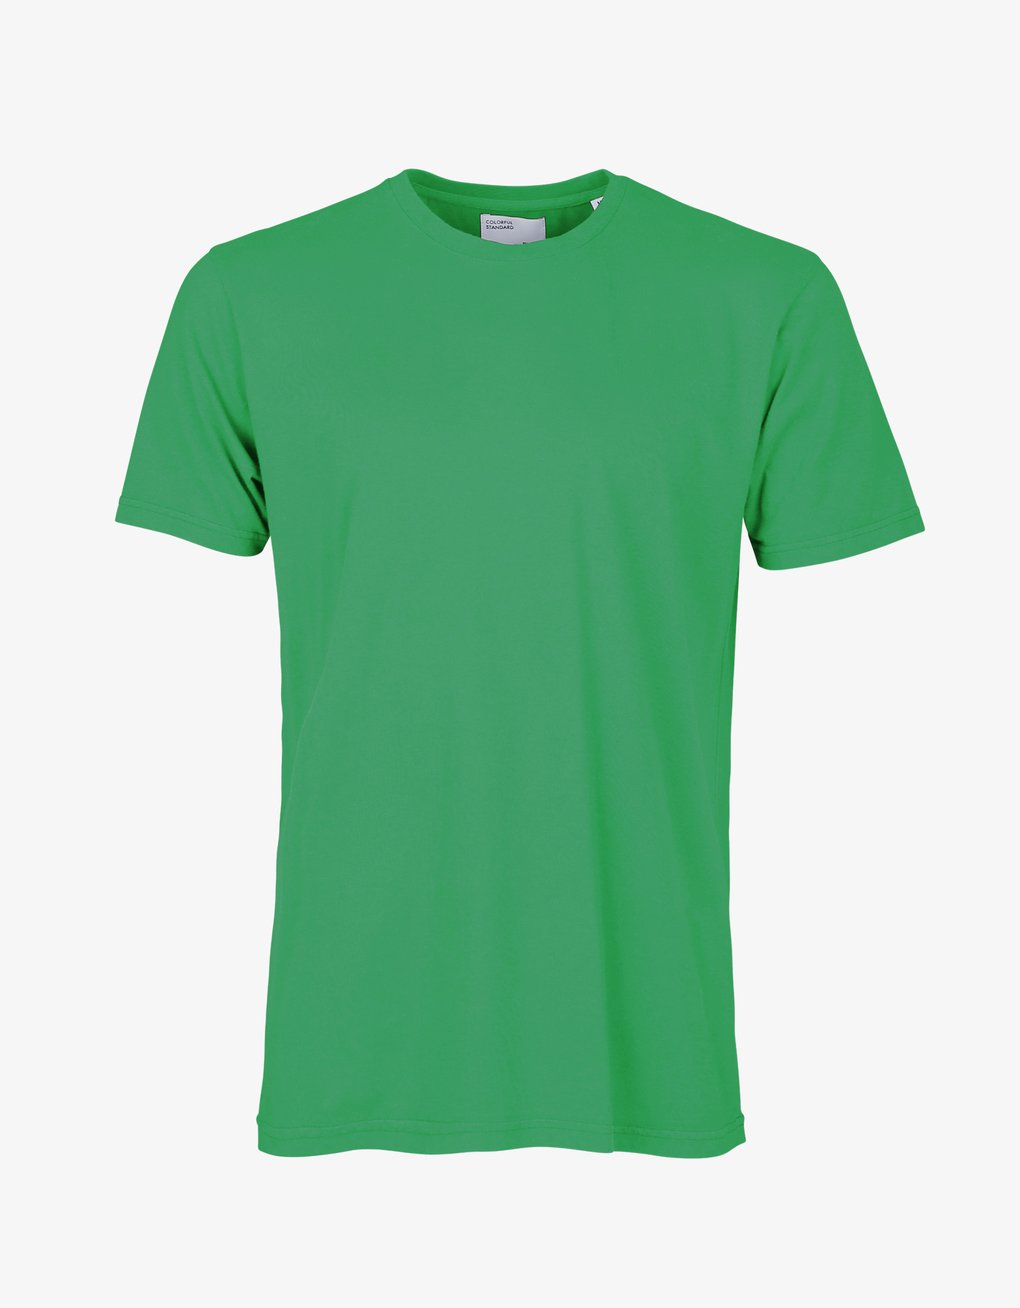 COLORFUL STANDARD | Classic Organic T-shirt | Kelly Green - LONDØNWORKS